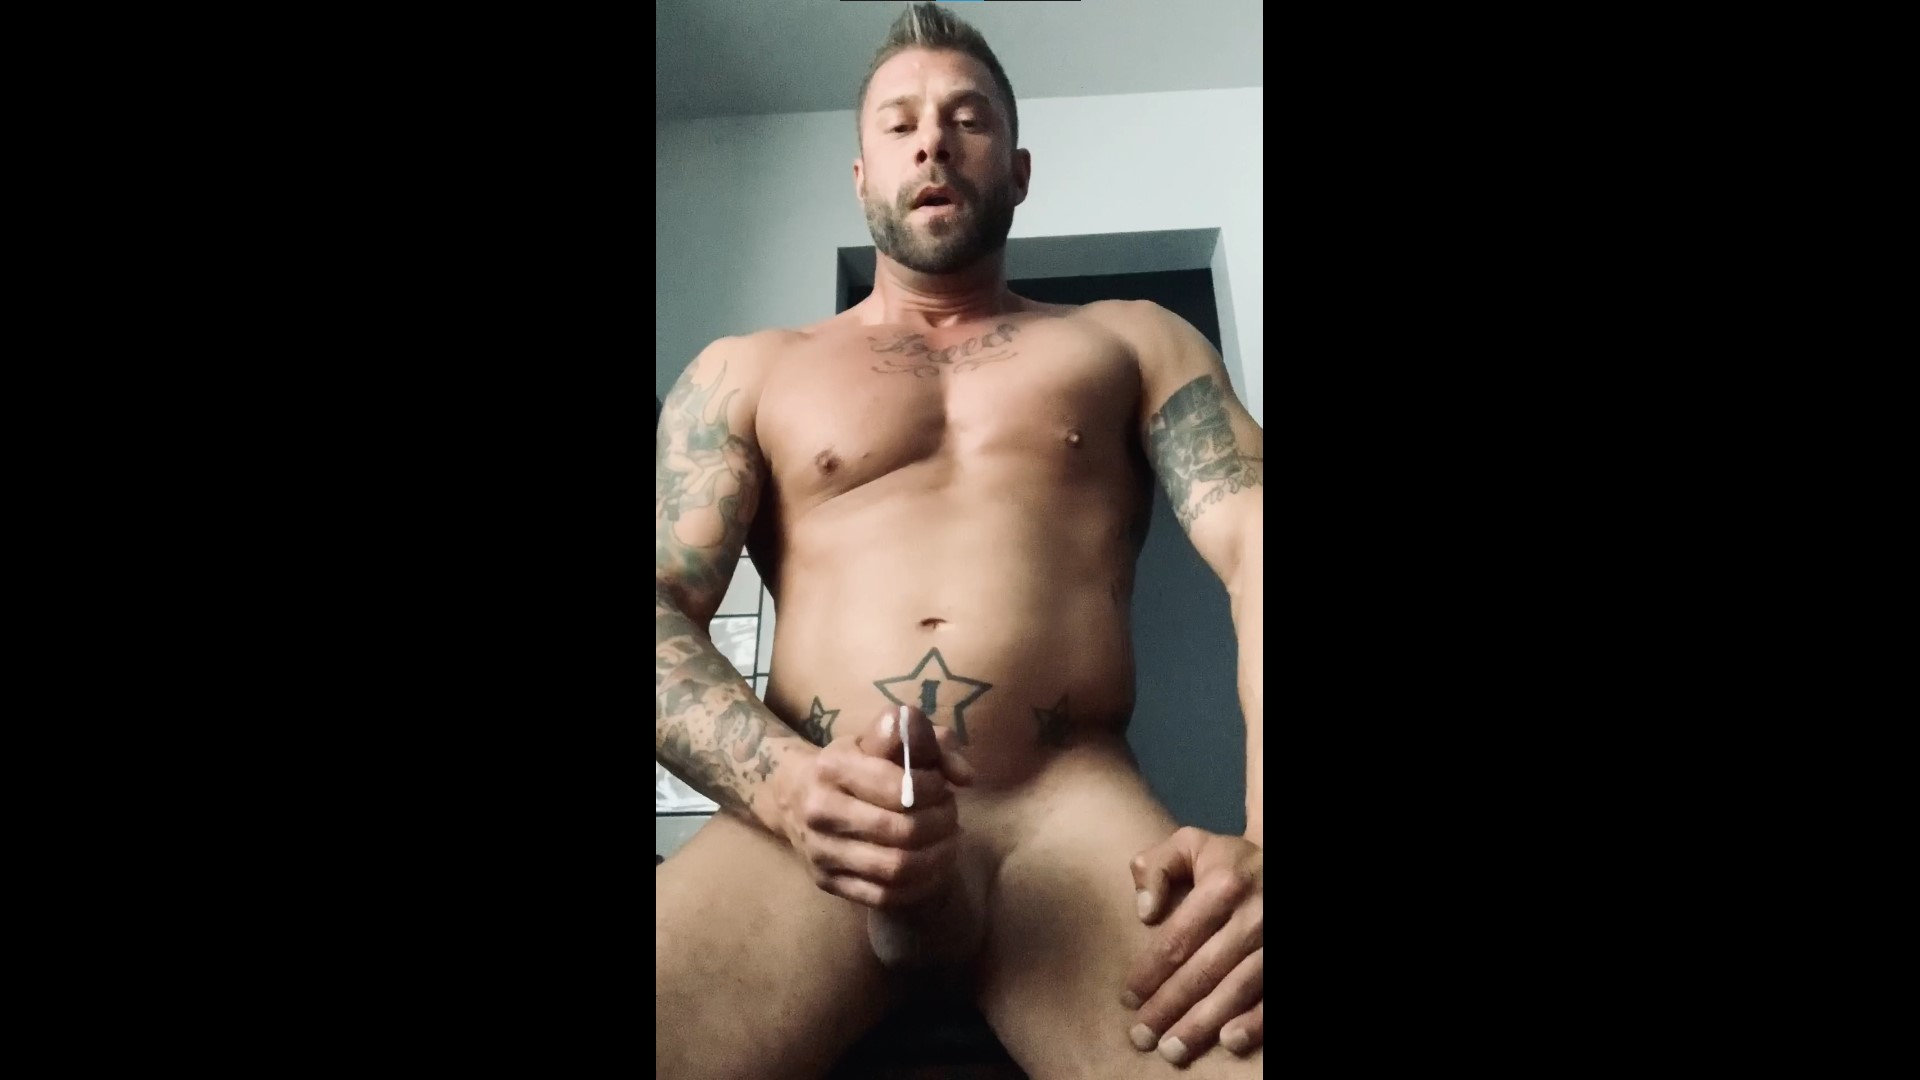 Jerking off and cumming before bed - slickript